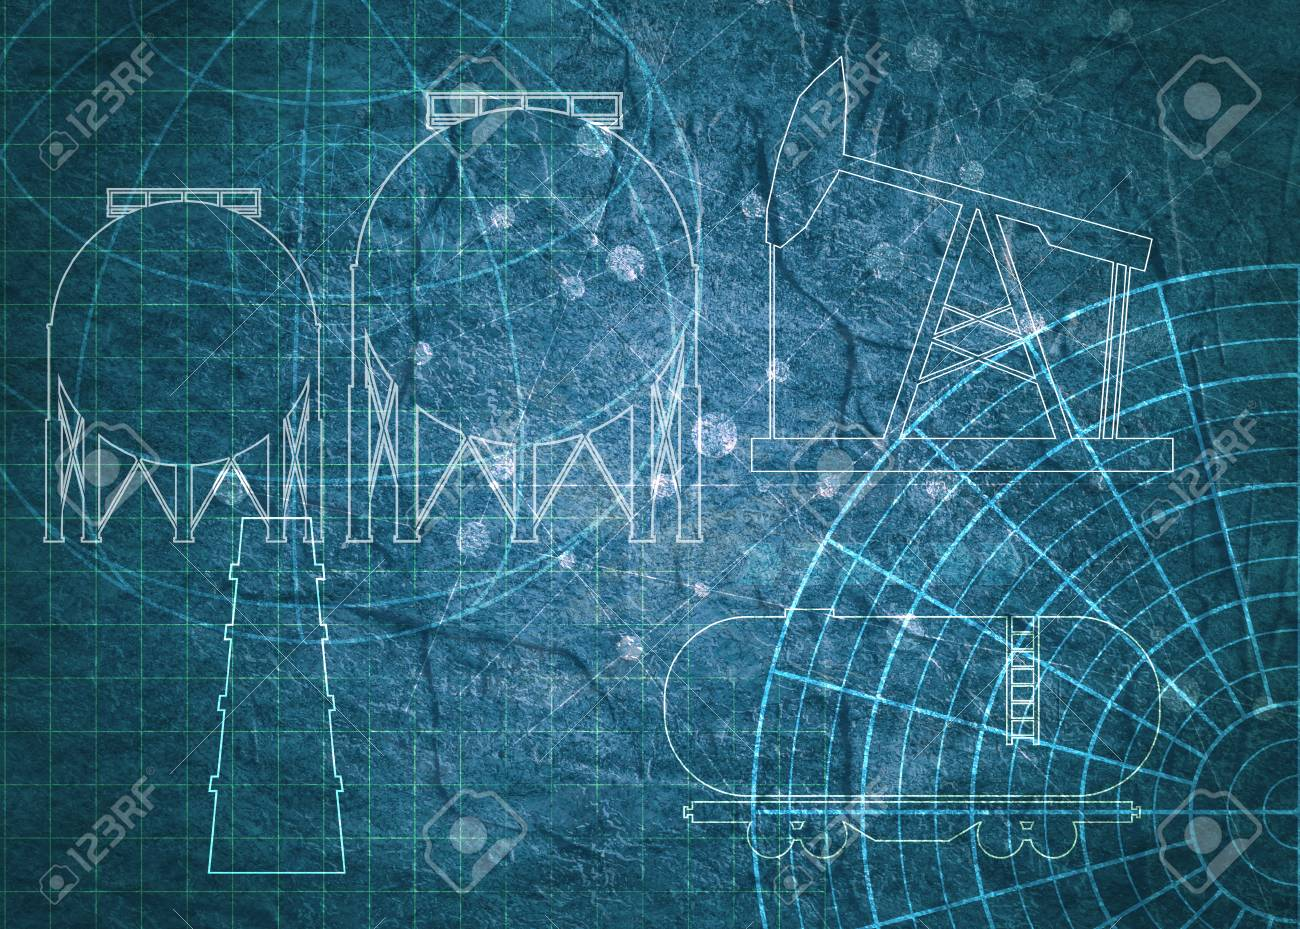 Old blueprint background texture technical backdrop paper old blueprint background texture technical backdrop paper outline silhouettes on concrete textured backdrop stock malvernweather Image collections